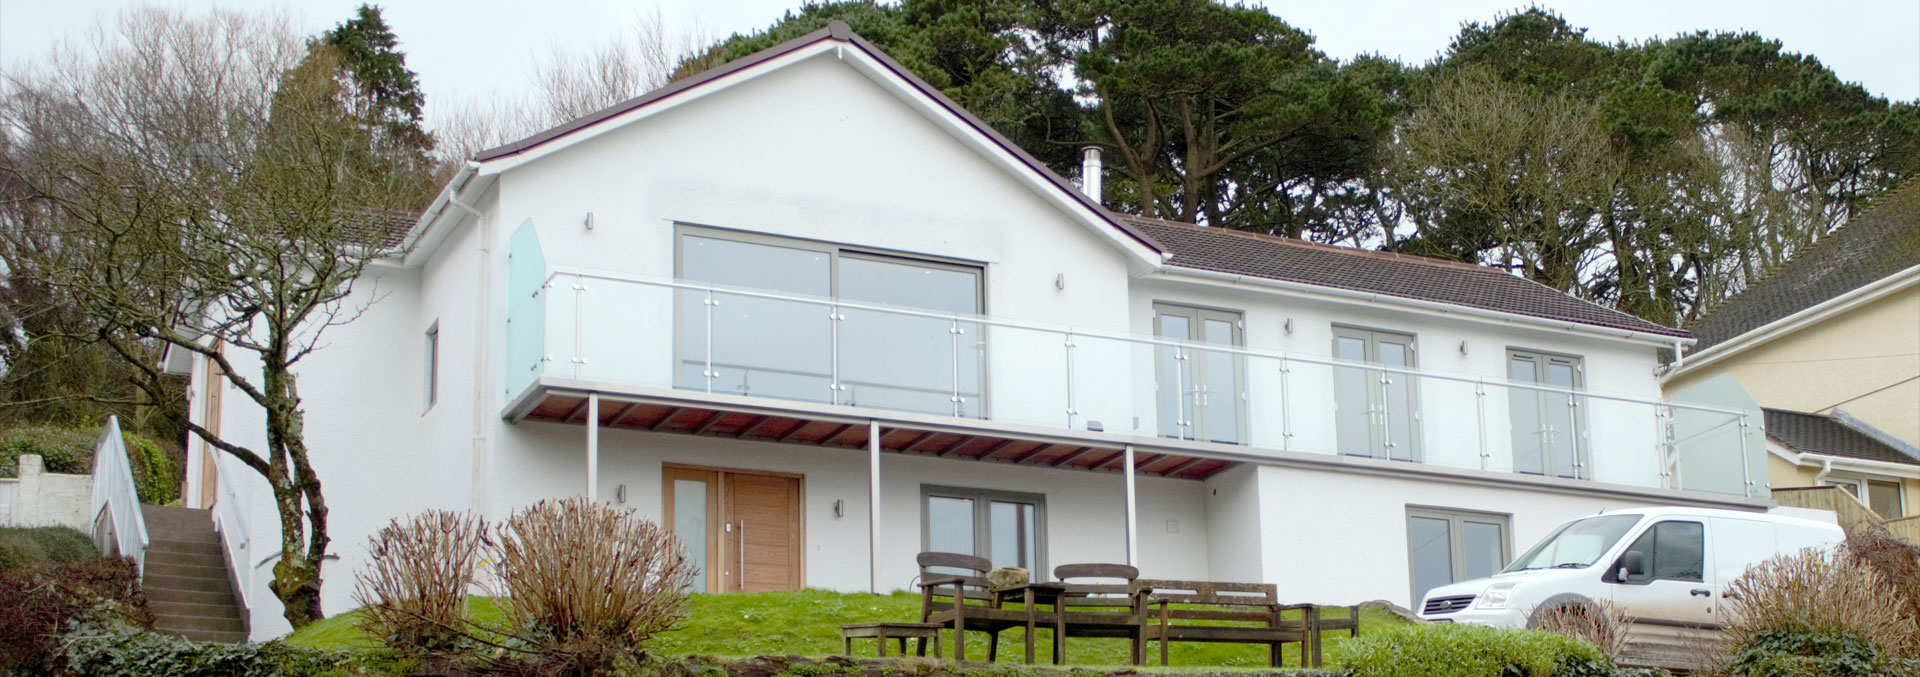 Stainless Fabs Ltd Plymouth Devon Cornwall South Hams Bespoke Stainless Steel Solutions